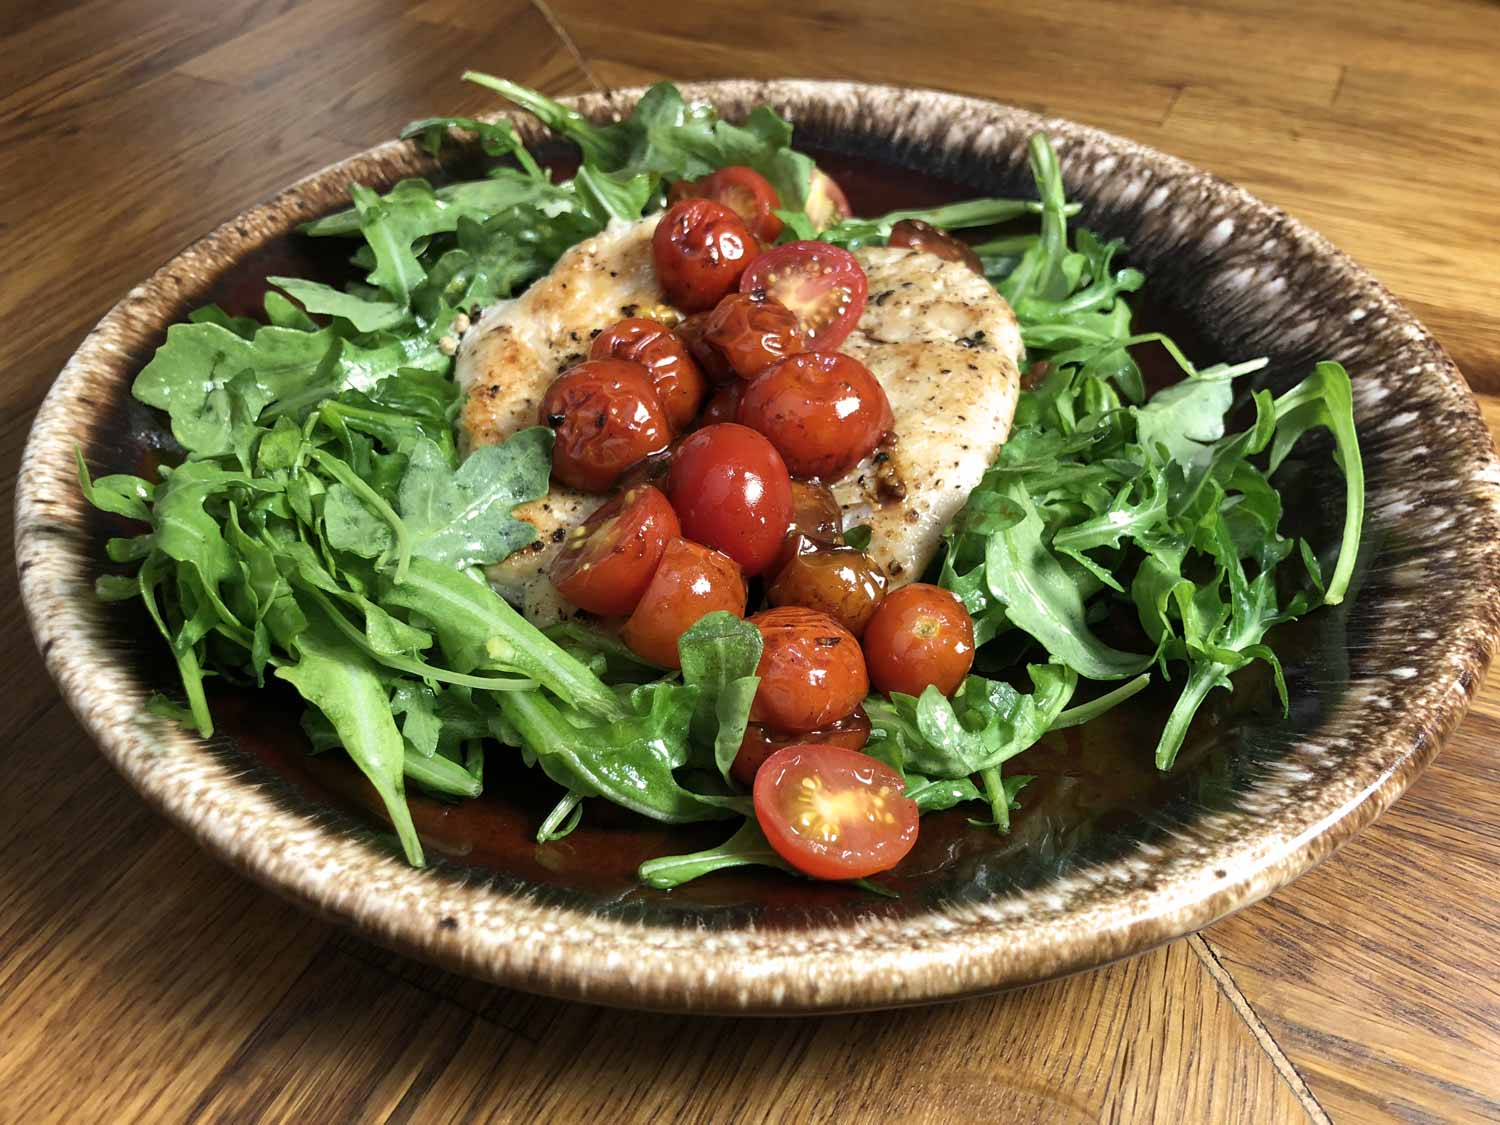 arugula, chicken breast, and tomatoes